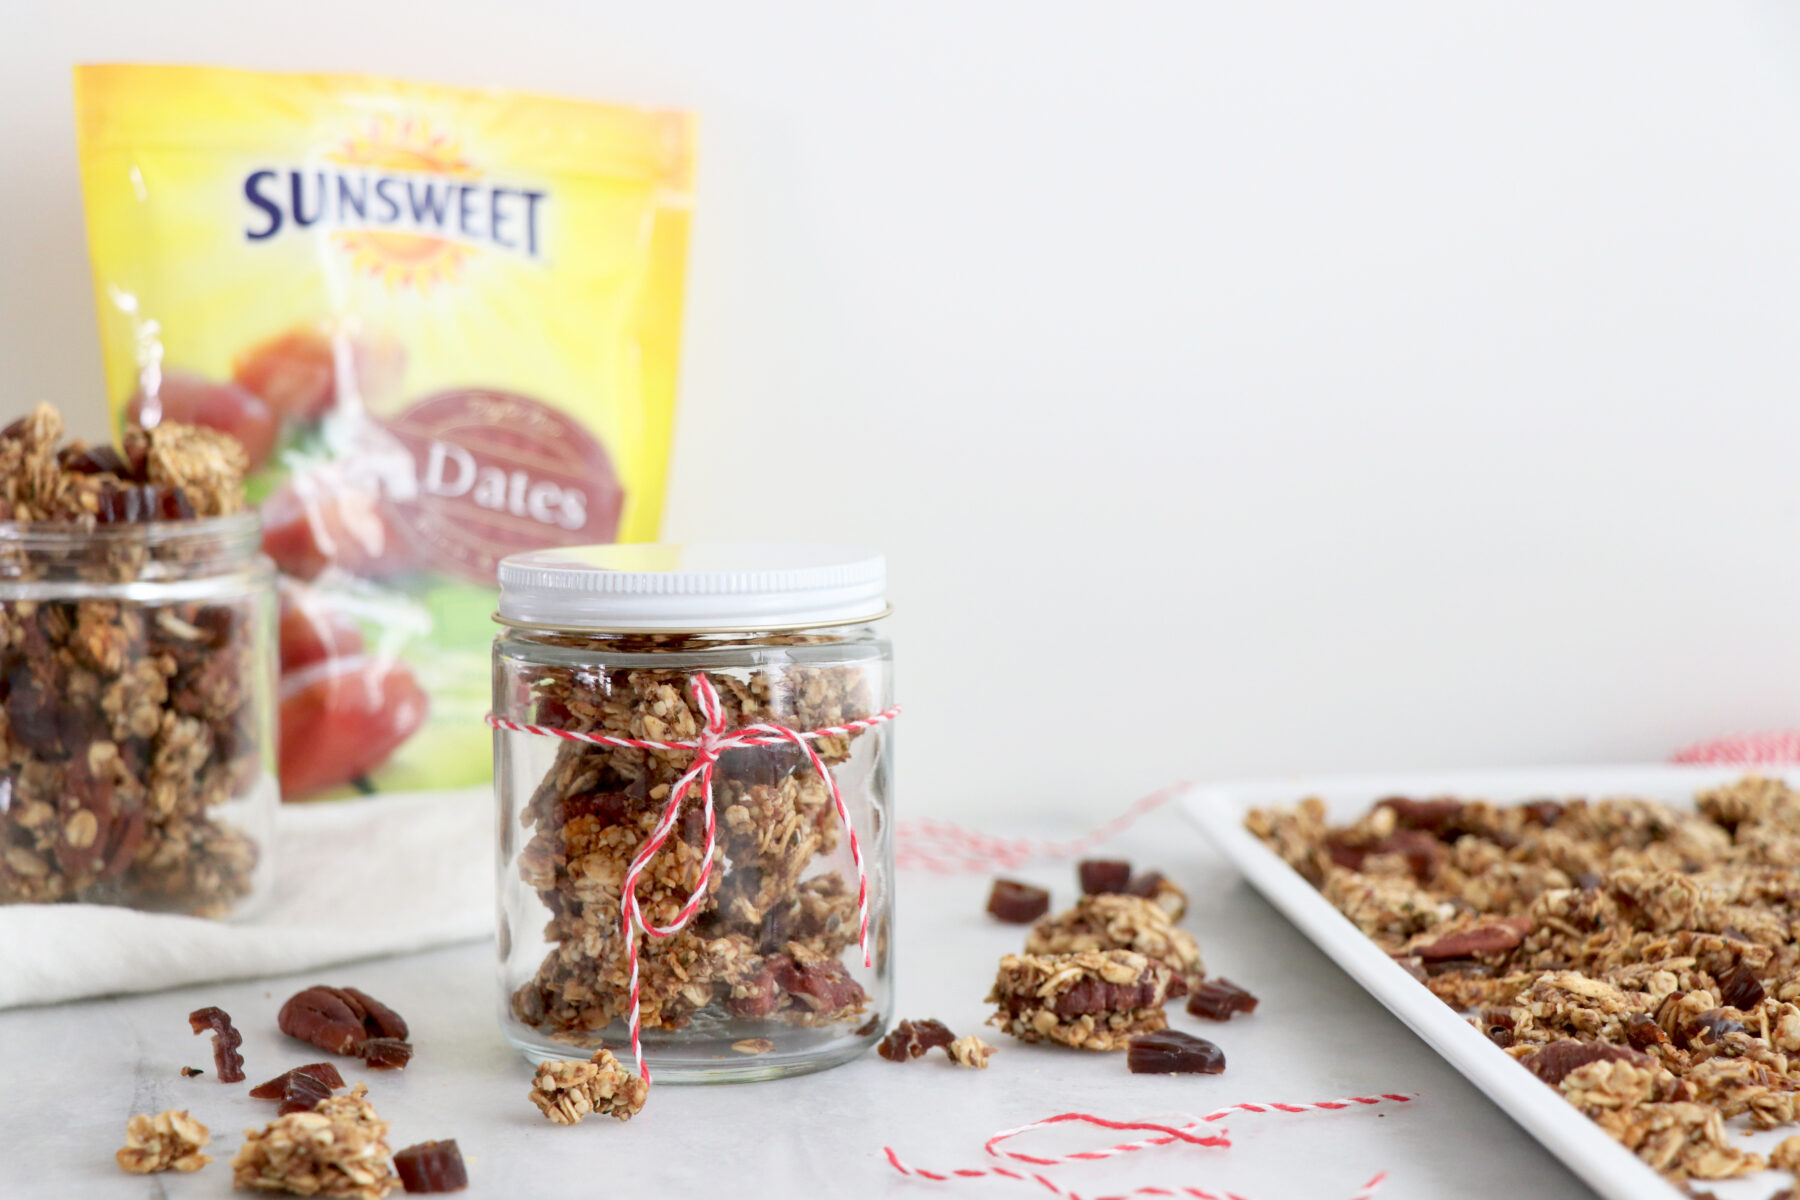 DIY Homemade Granola in Glass Jar with Red Ribbon and Package of Sunsweet Dates in Background